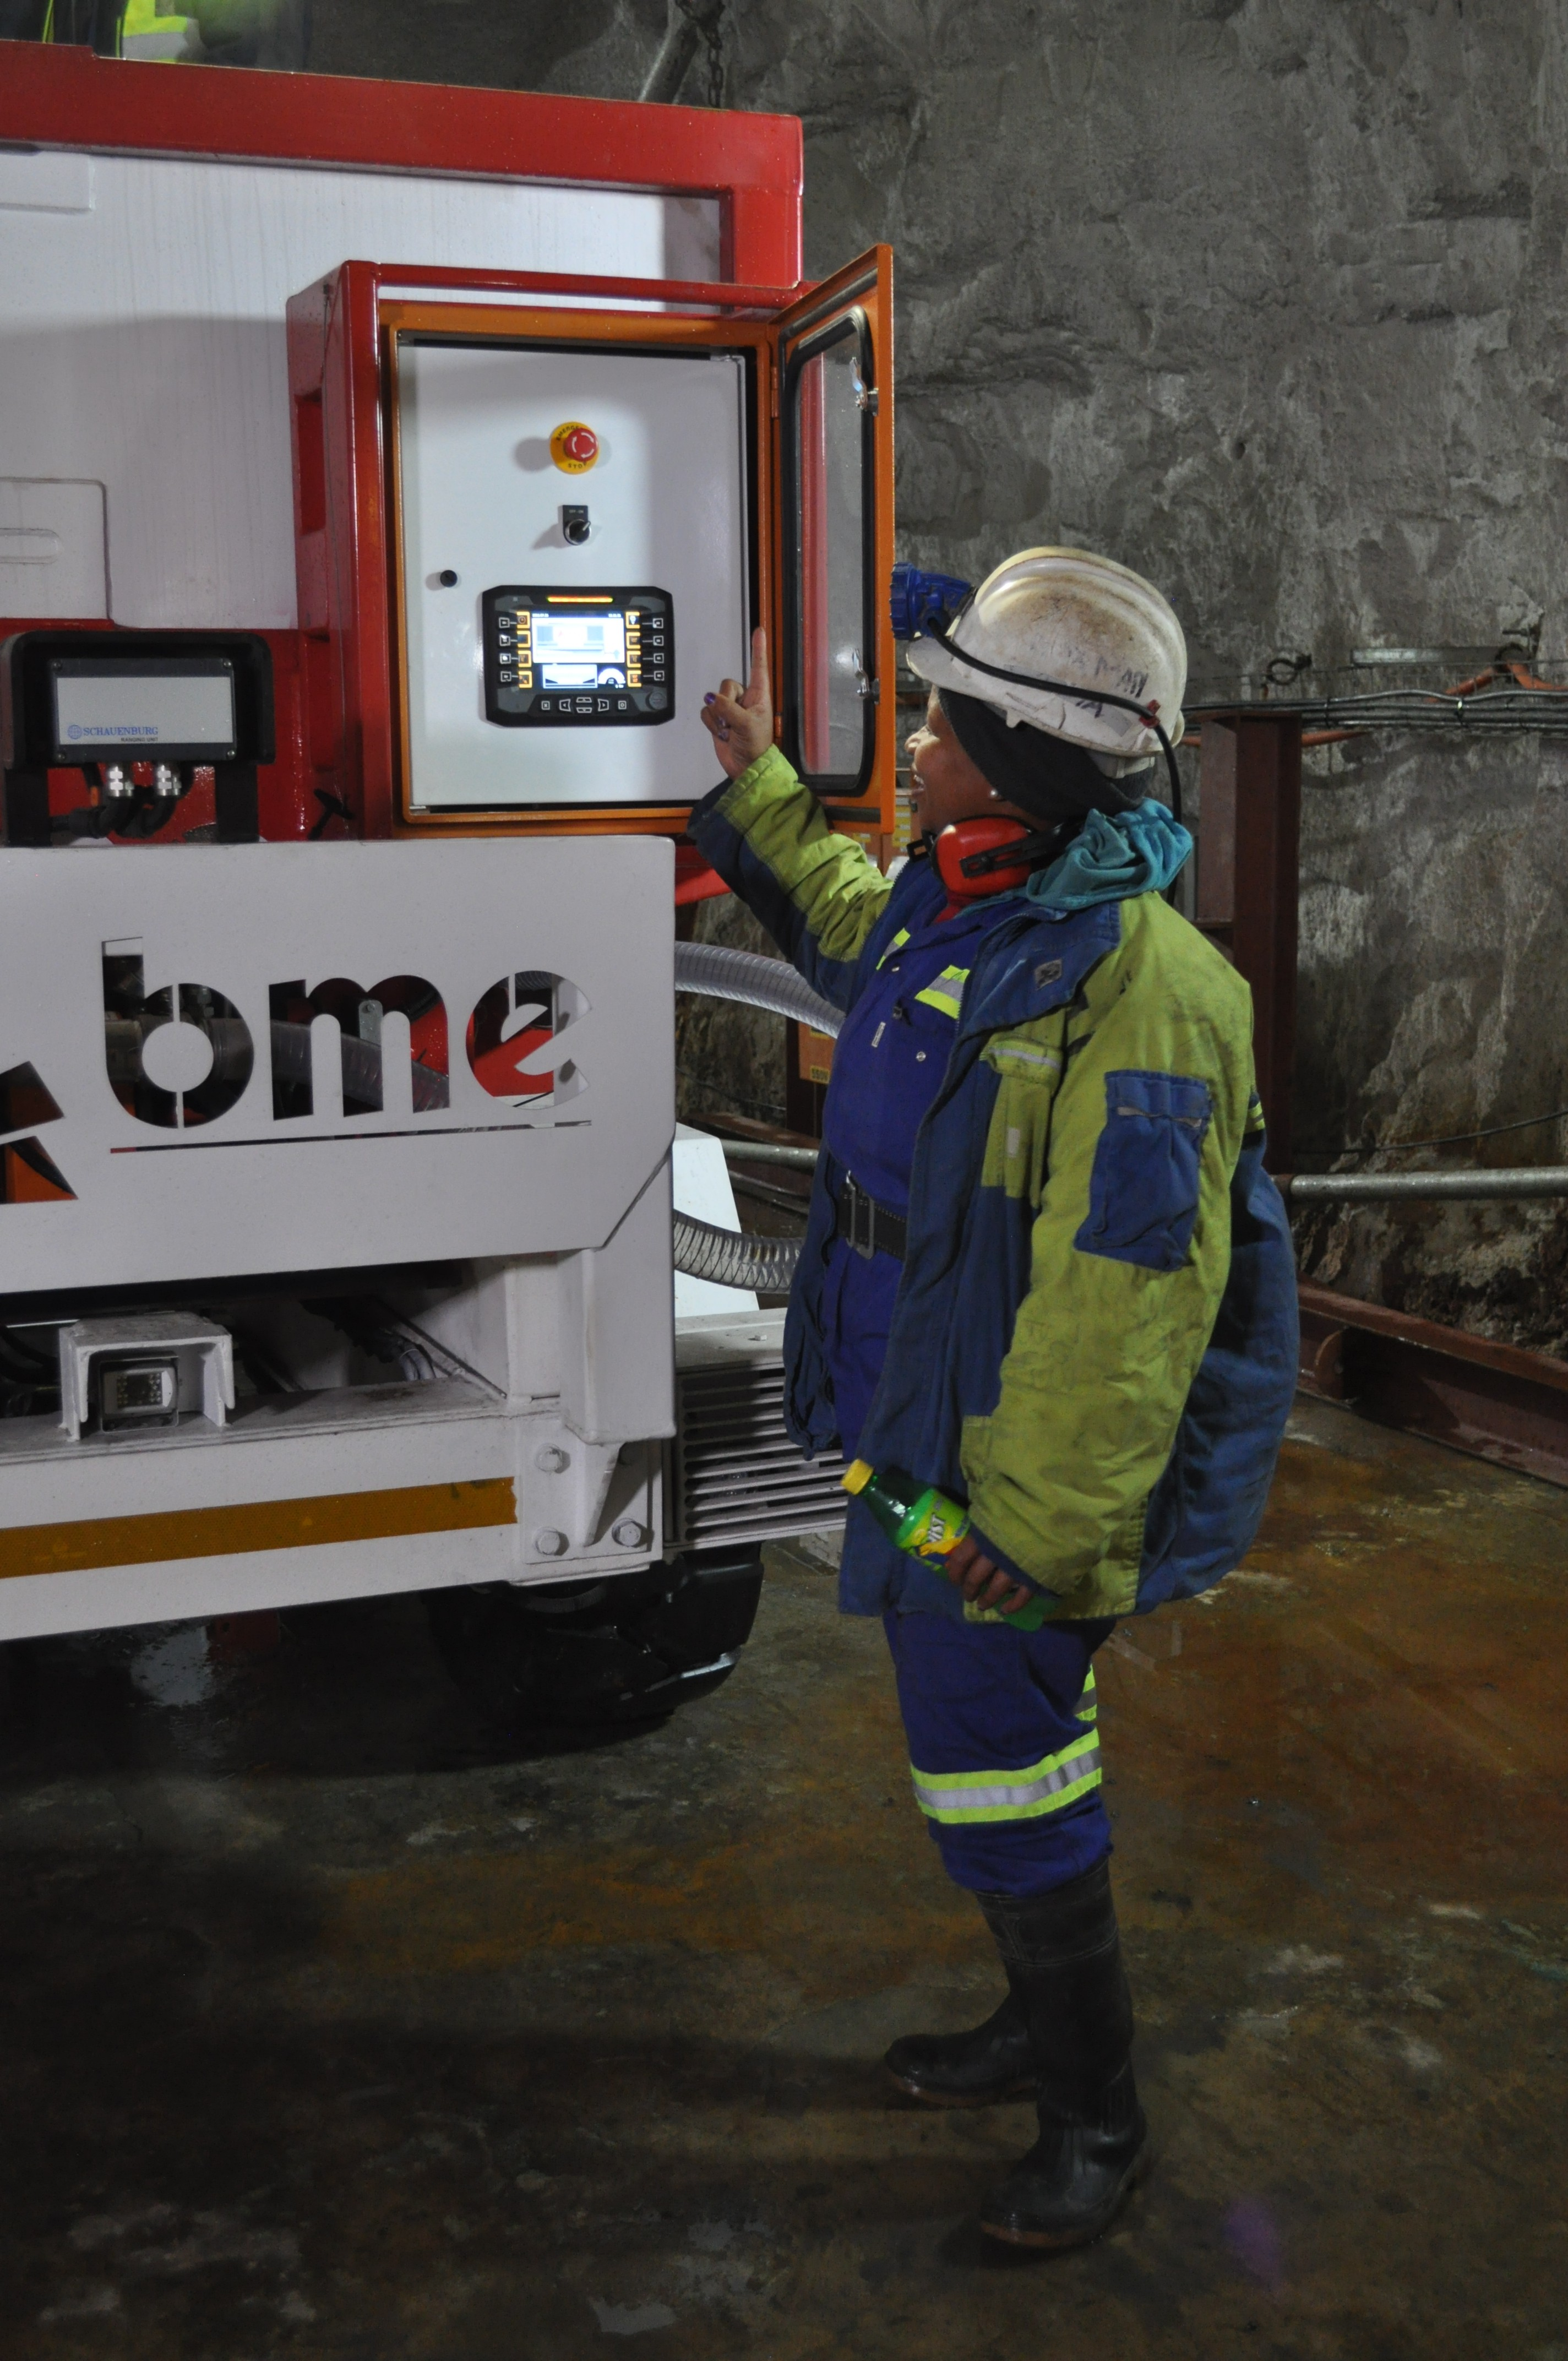 All BME emulsion delivery equipment is fitted with electronic control and information systems for the reporting of daily blasting activities